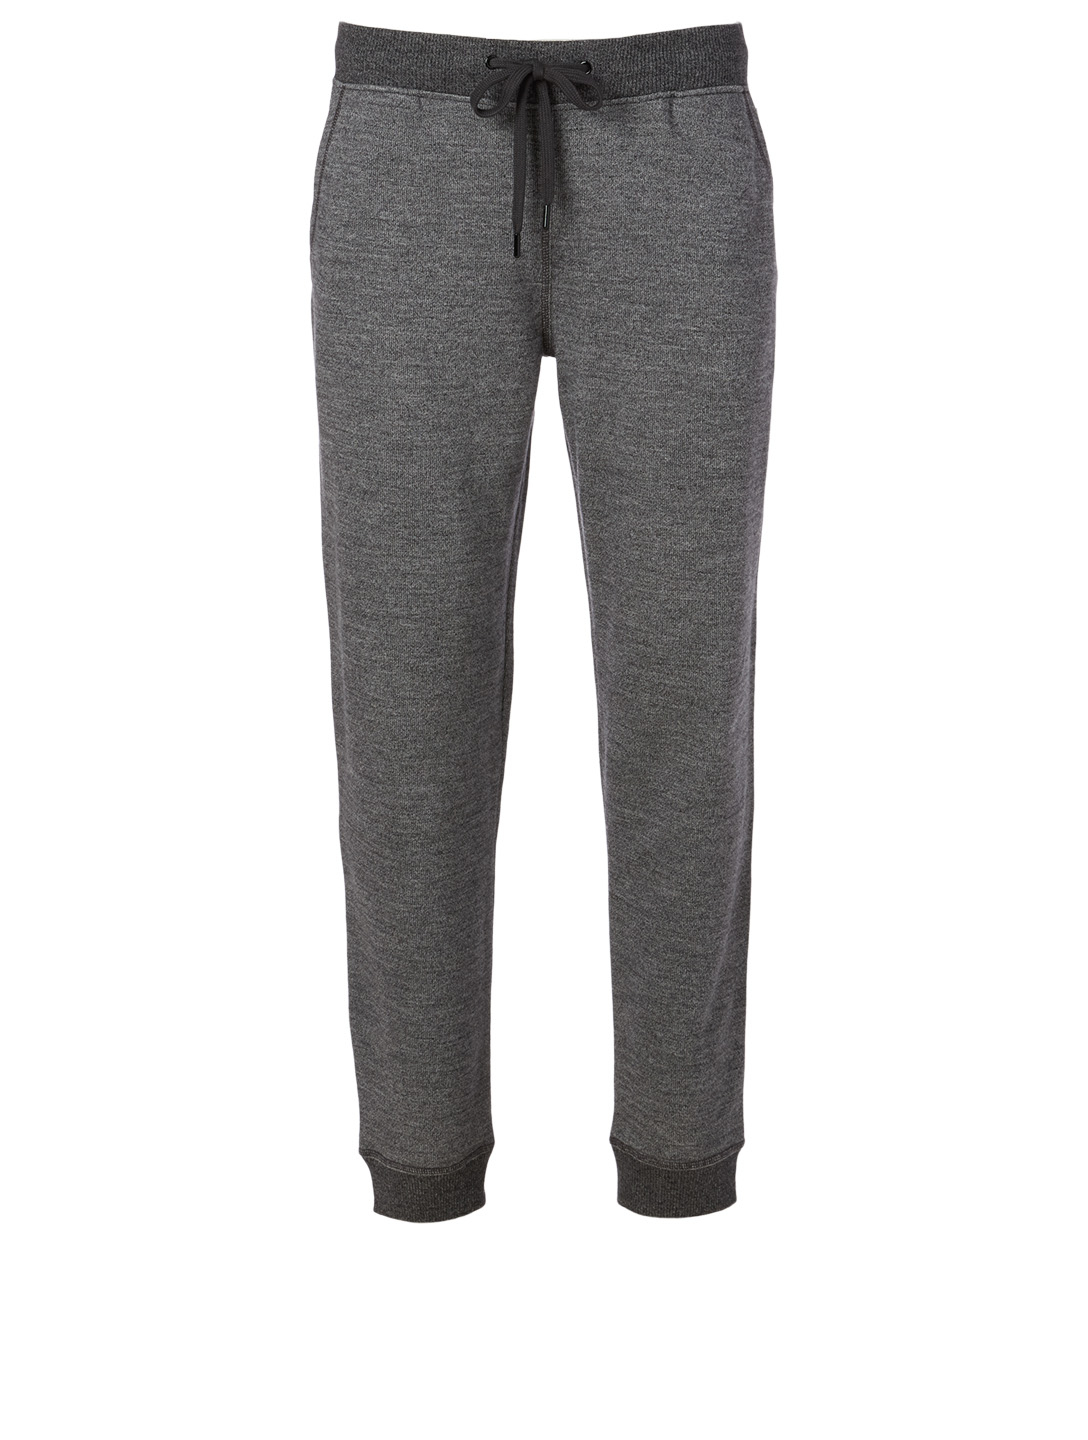 ORLEBAR BROWN Beagi Cotton And Wool Sweatpants Men's Grey